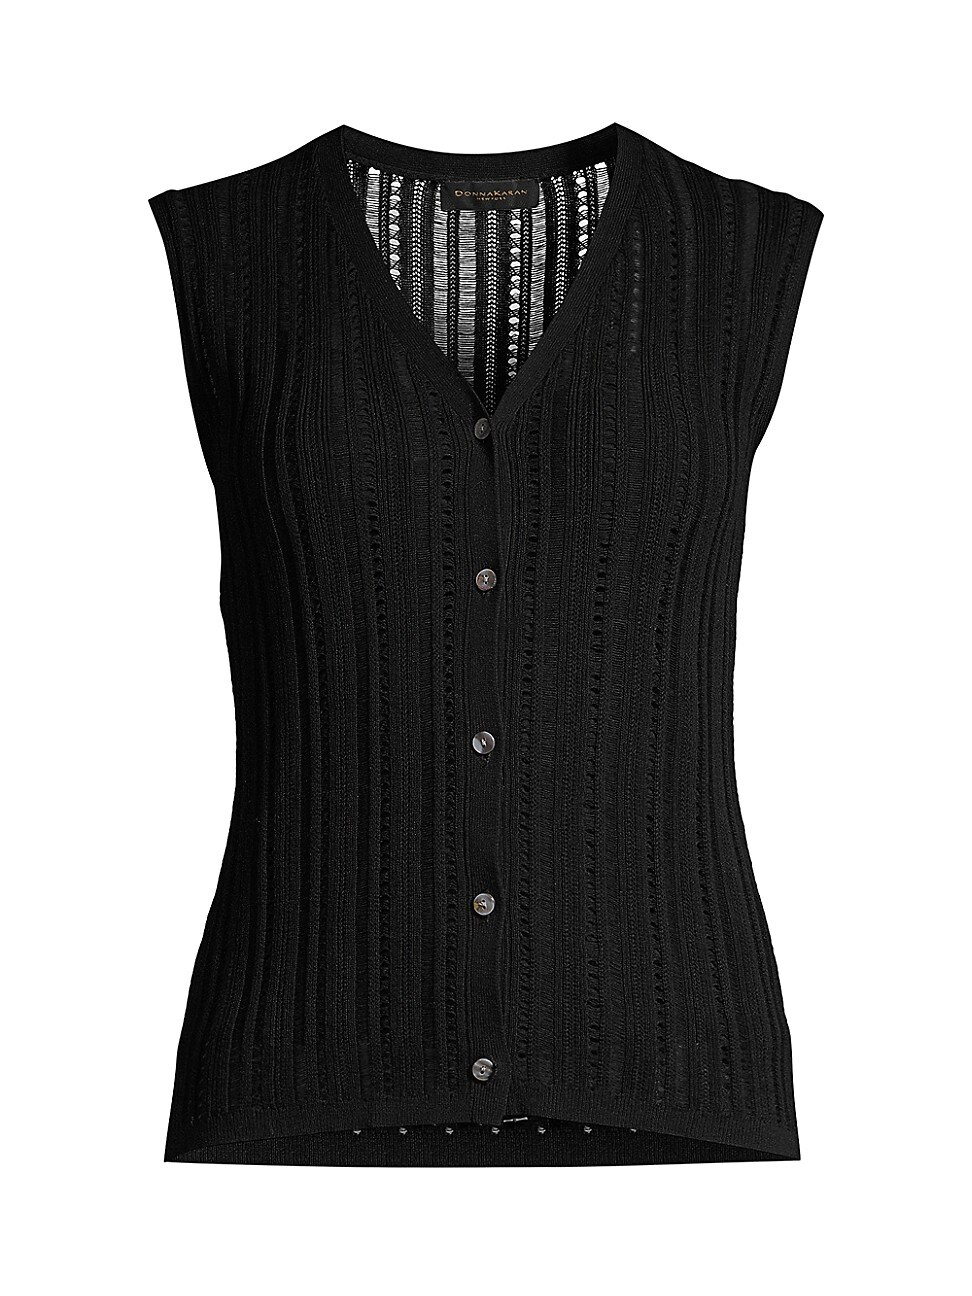 Donna Karan Women's Sleeveless Button-front Loose-weave Knit Top In Black